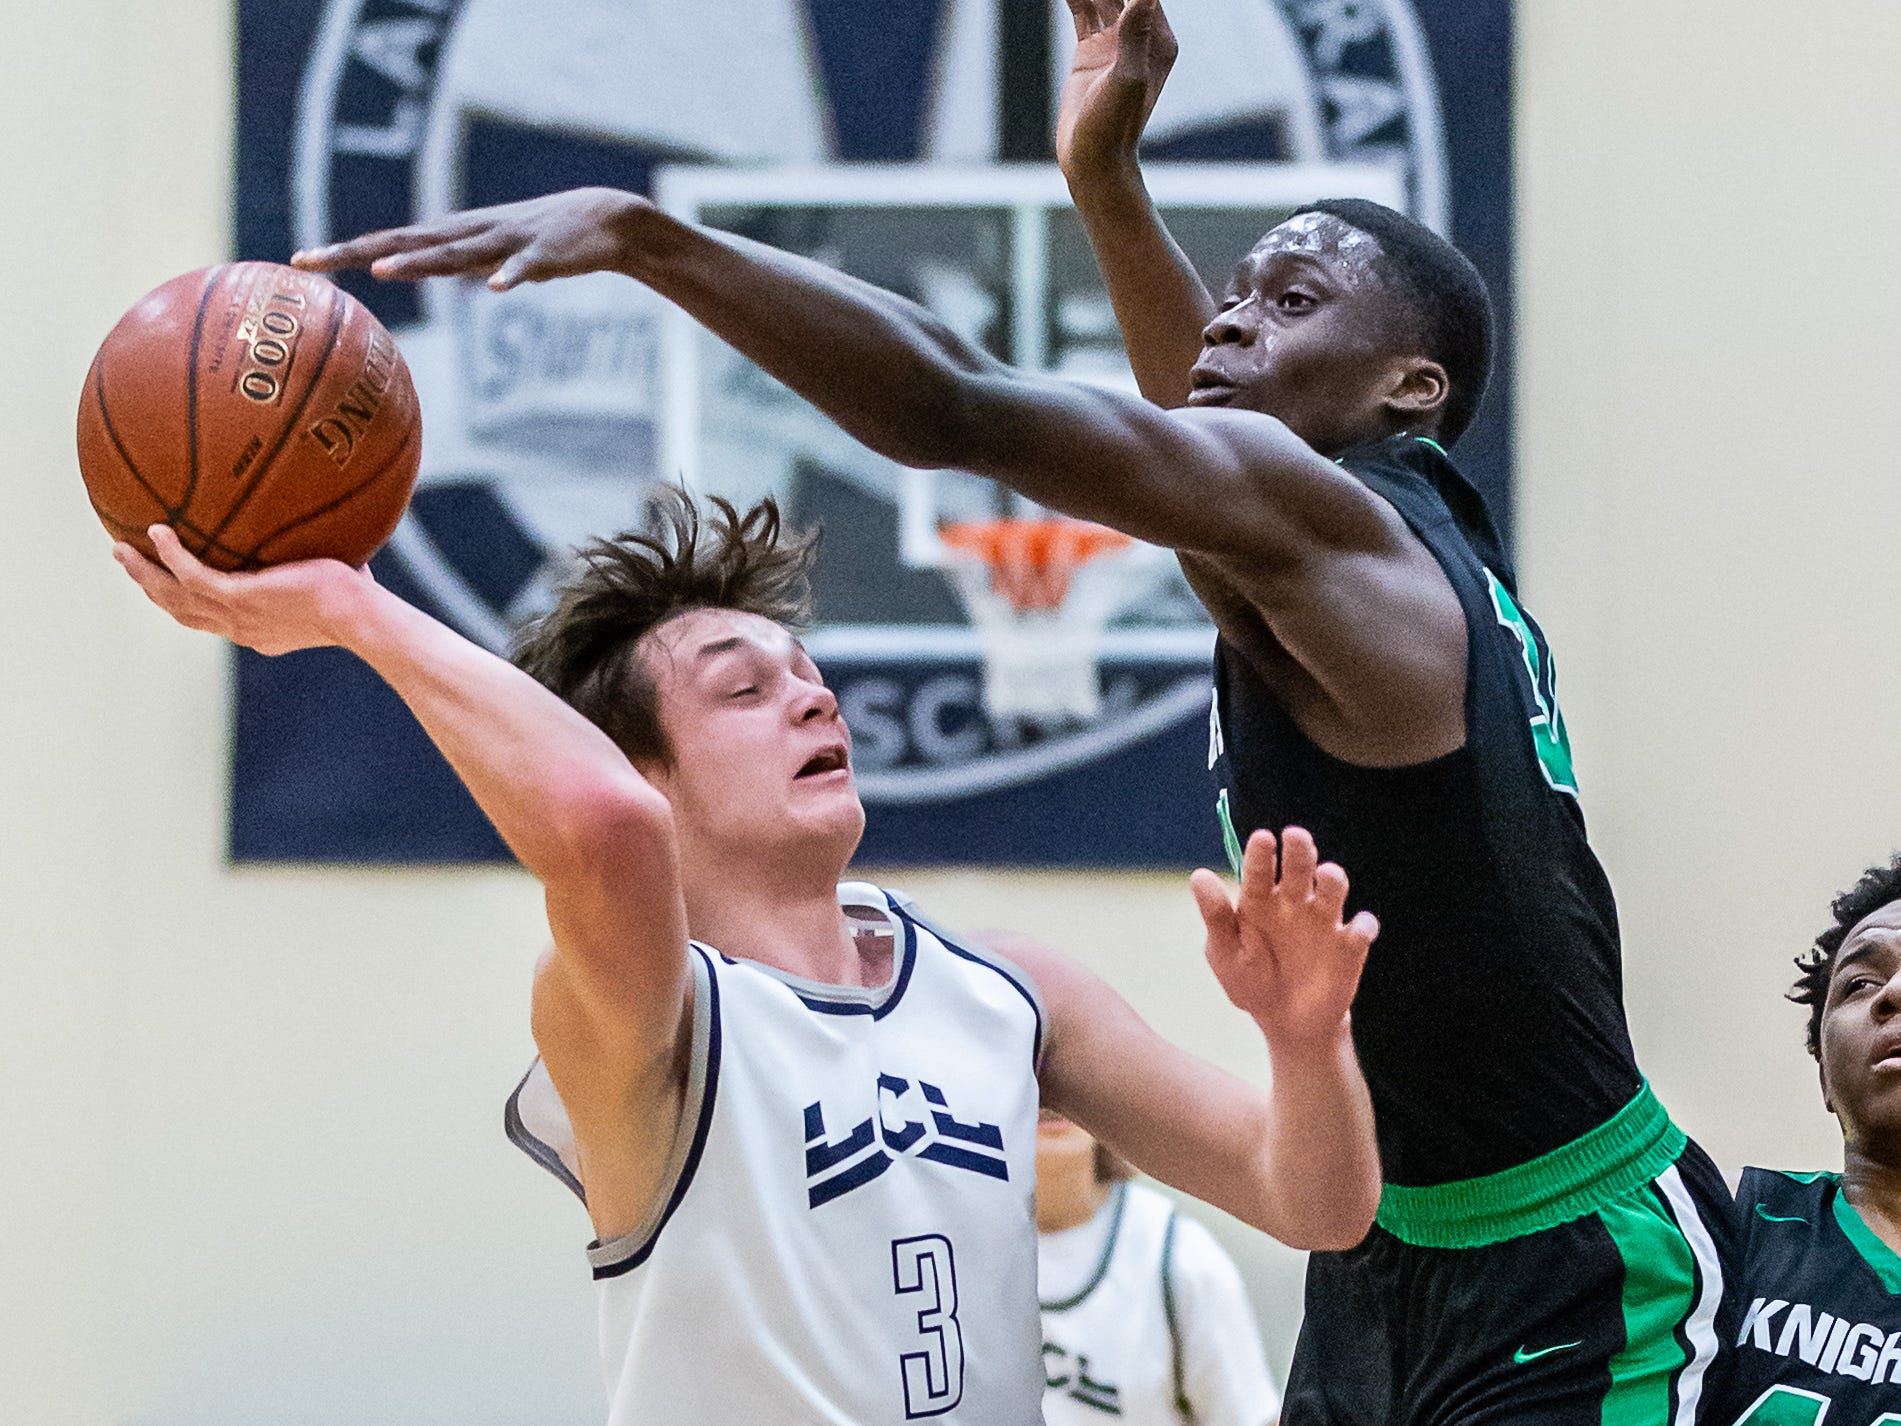 Dominican's Alex Antetokounmpo (34) fouls Lake Country Lutheran's Bryce Haertle (3) during the regional final at Lake Country Lutheran on Saturday, March 2, 2019.